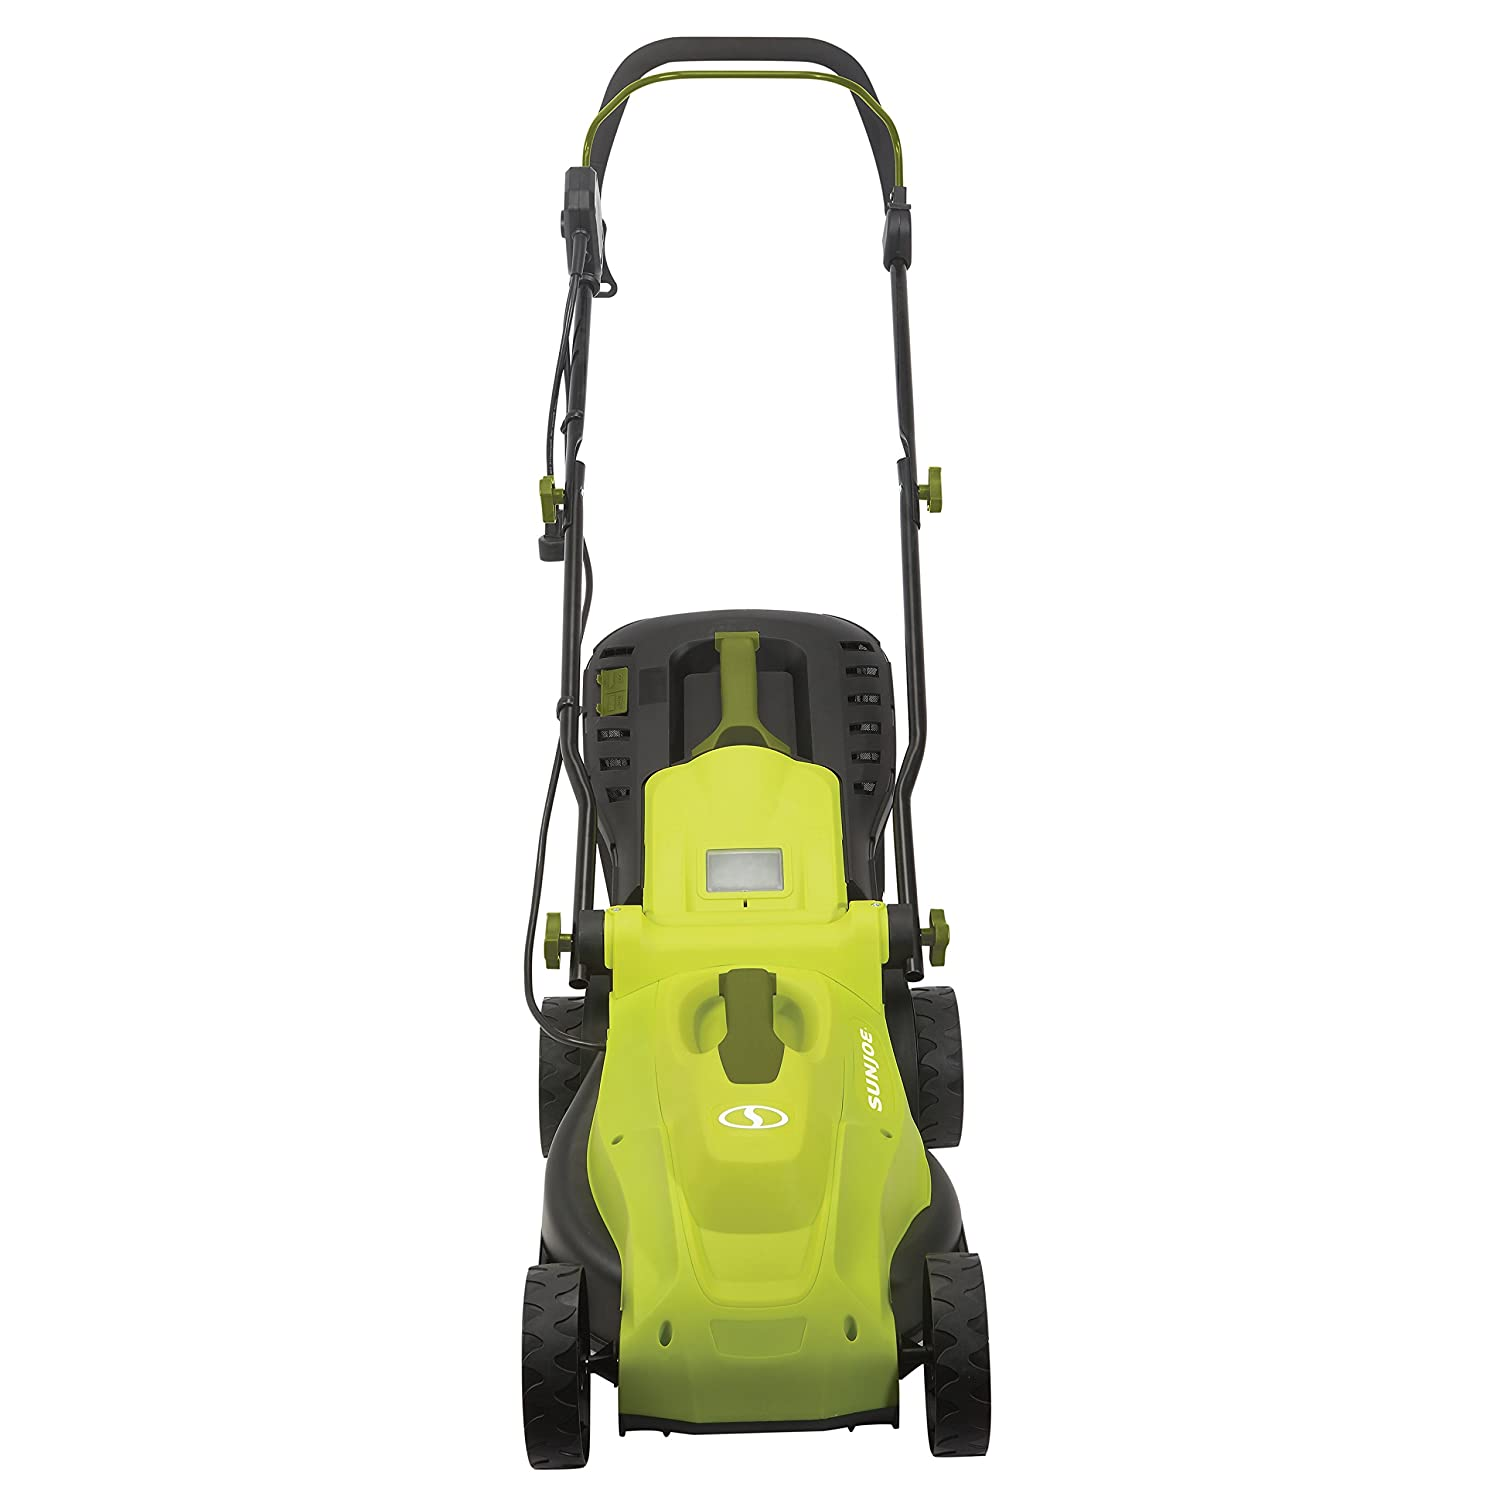 Amazon.com: Sun Joe MJ400E - Cortacésped eléctrico, color ...